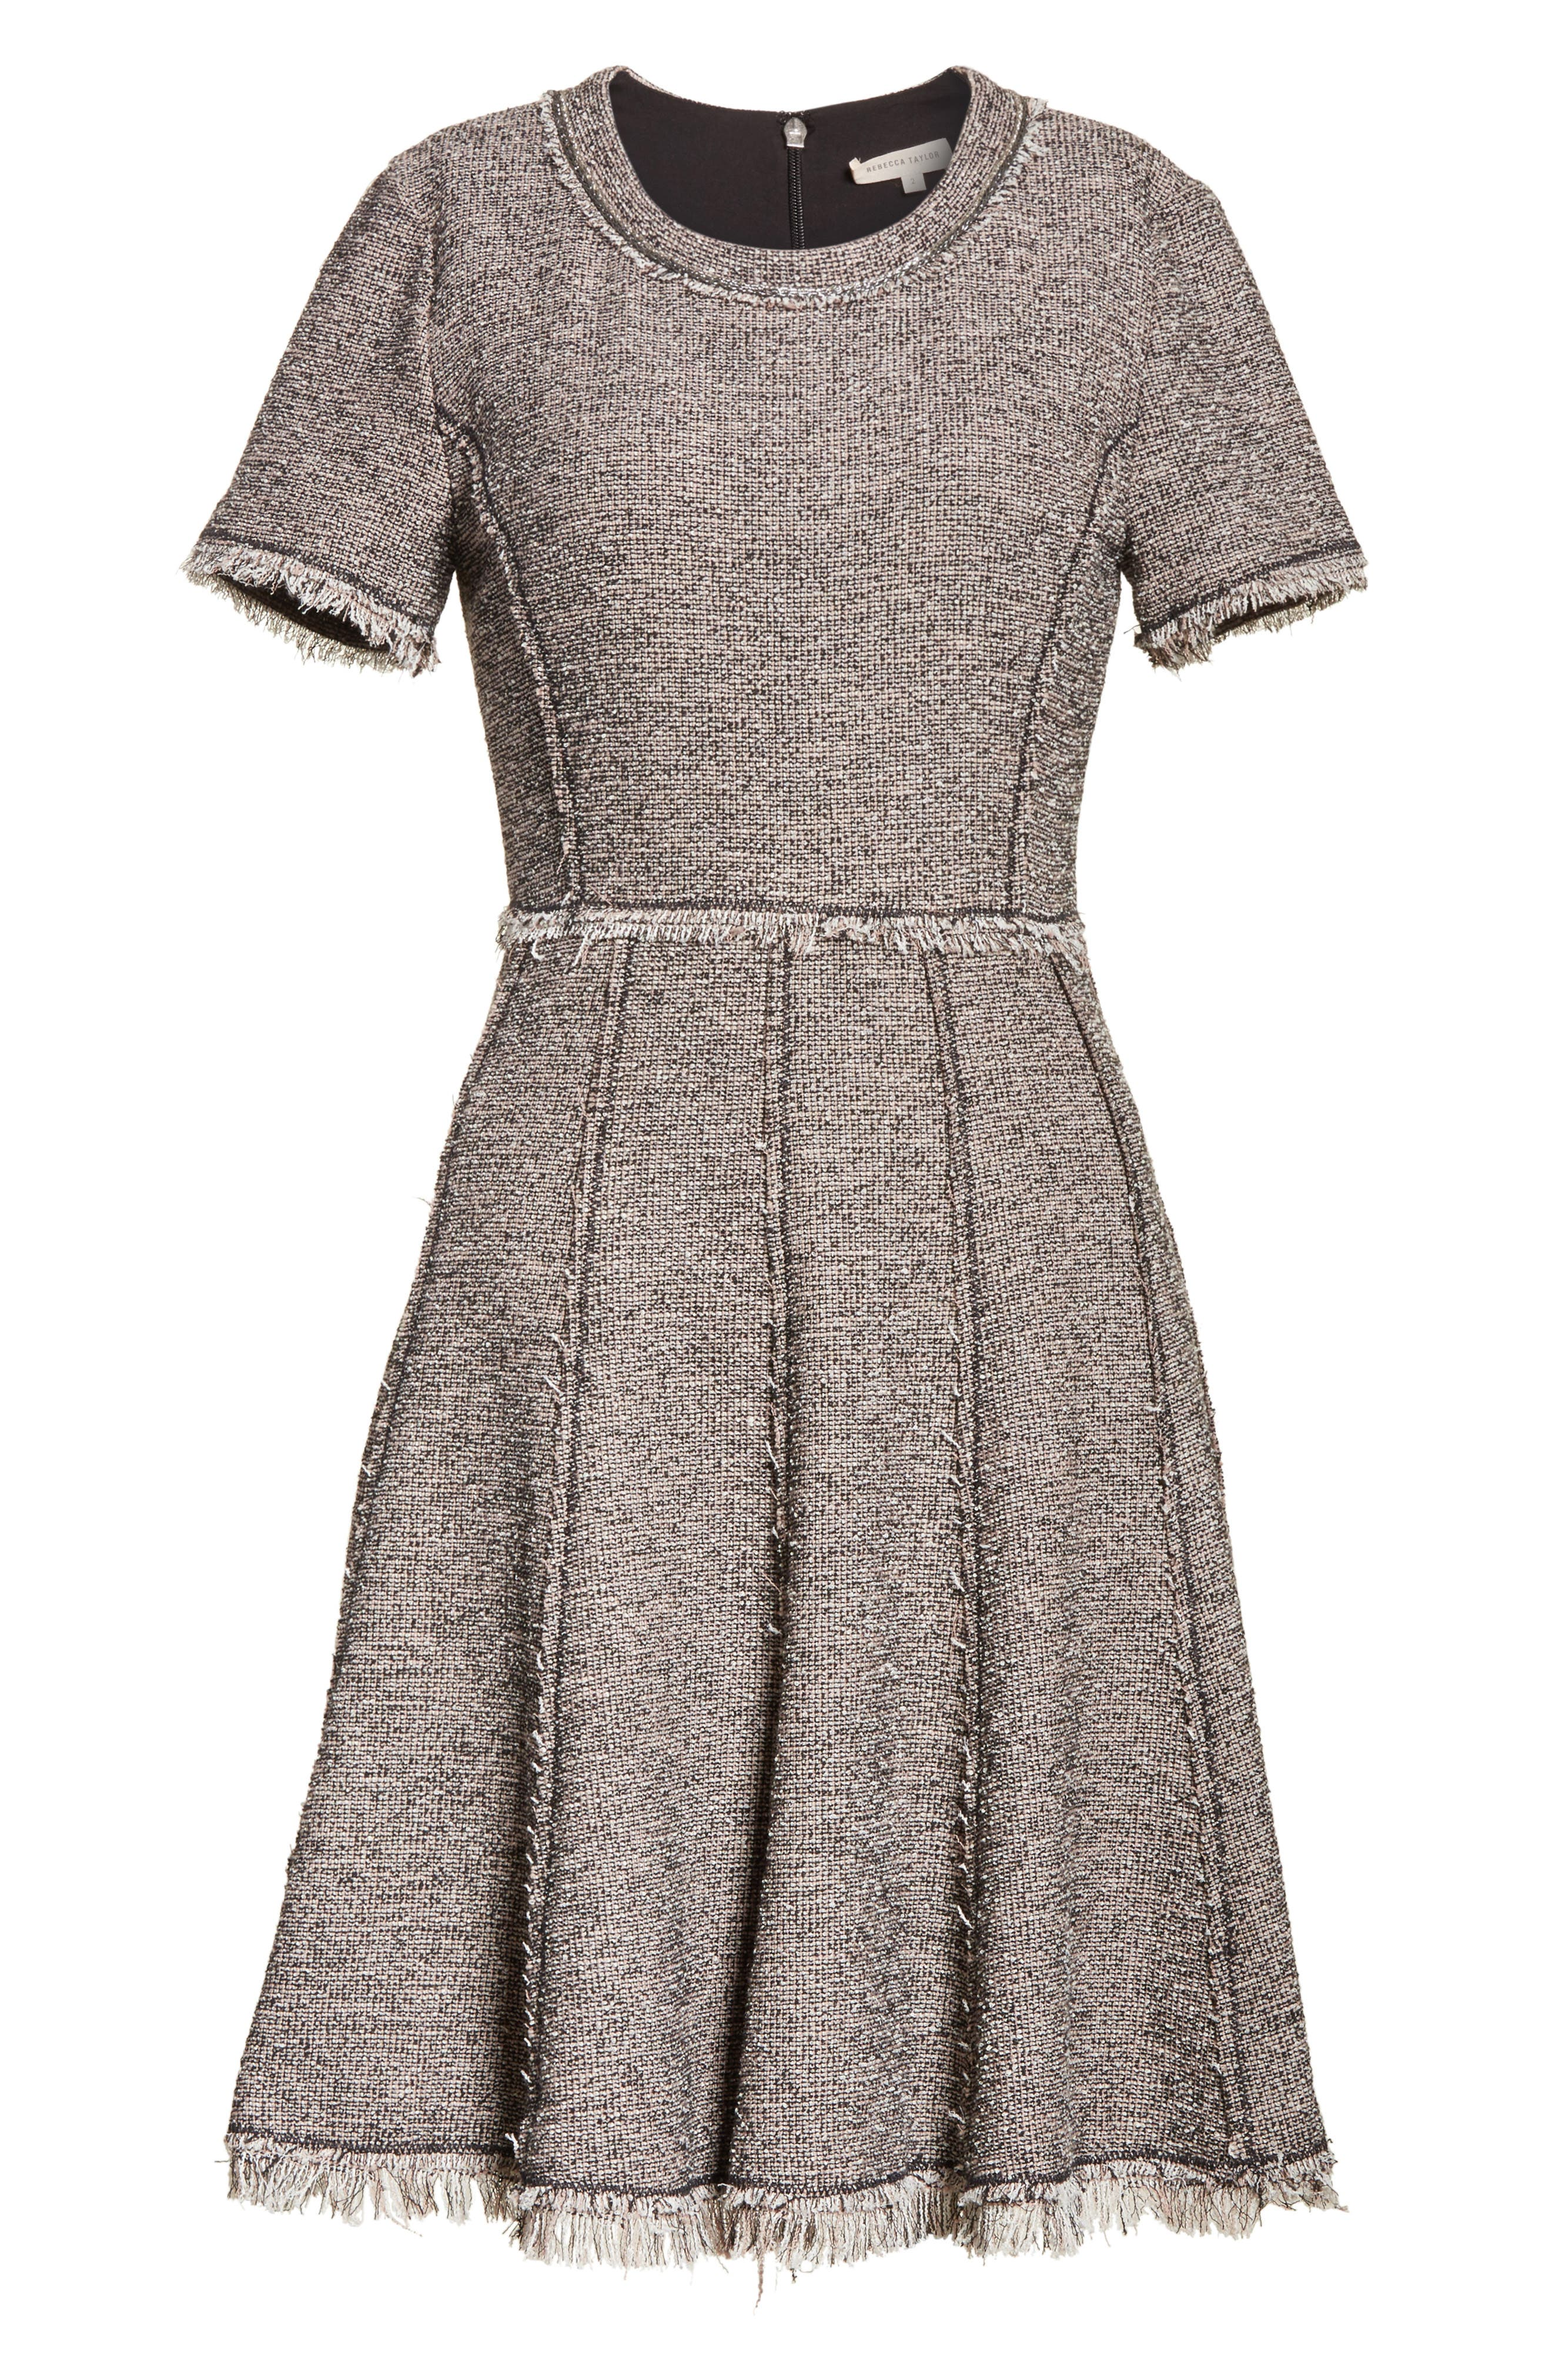 Stretch Tweed Dress,                             Alternate thumbnail 6, color,                             Nude Combo